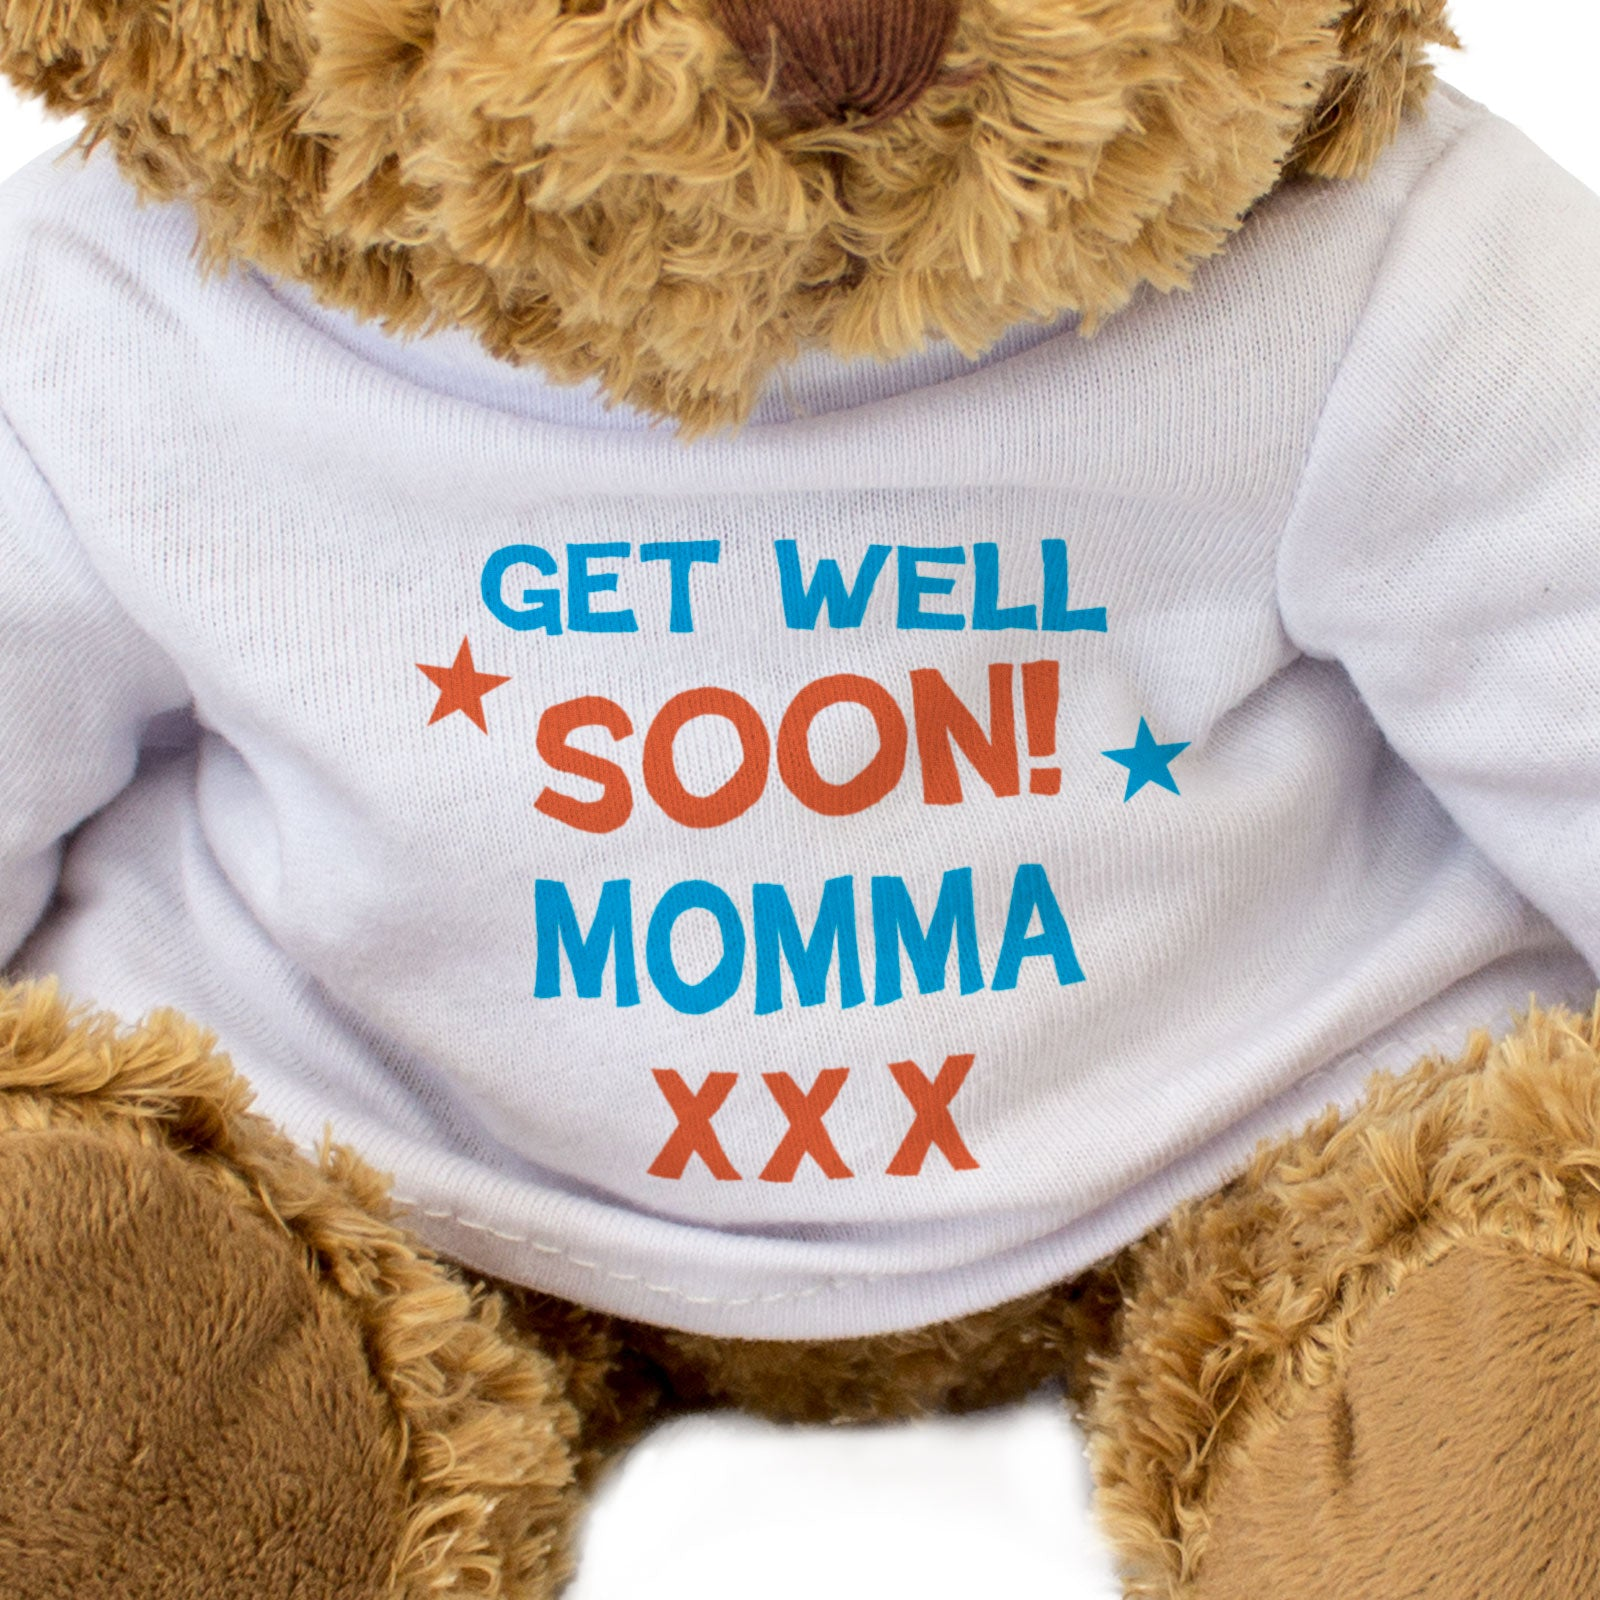 Get Well Soon Momma - Teddy Bear